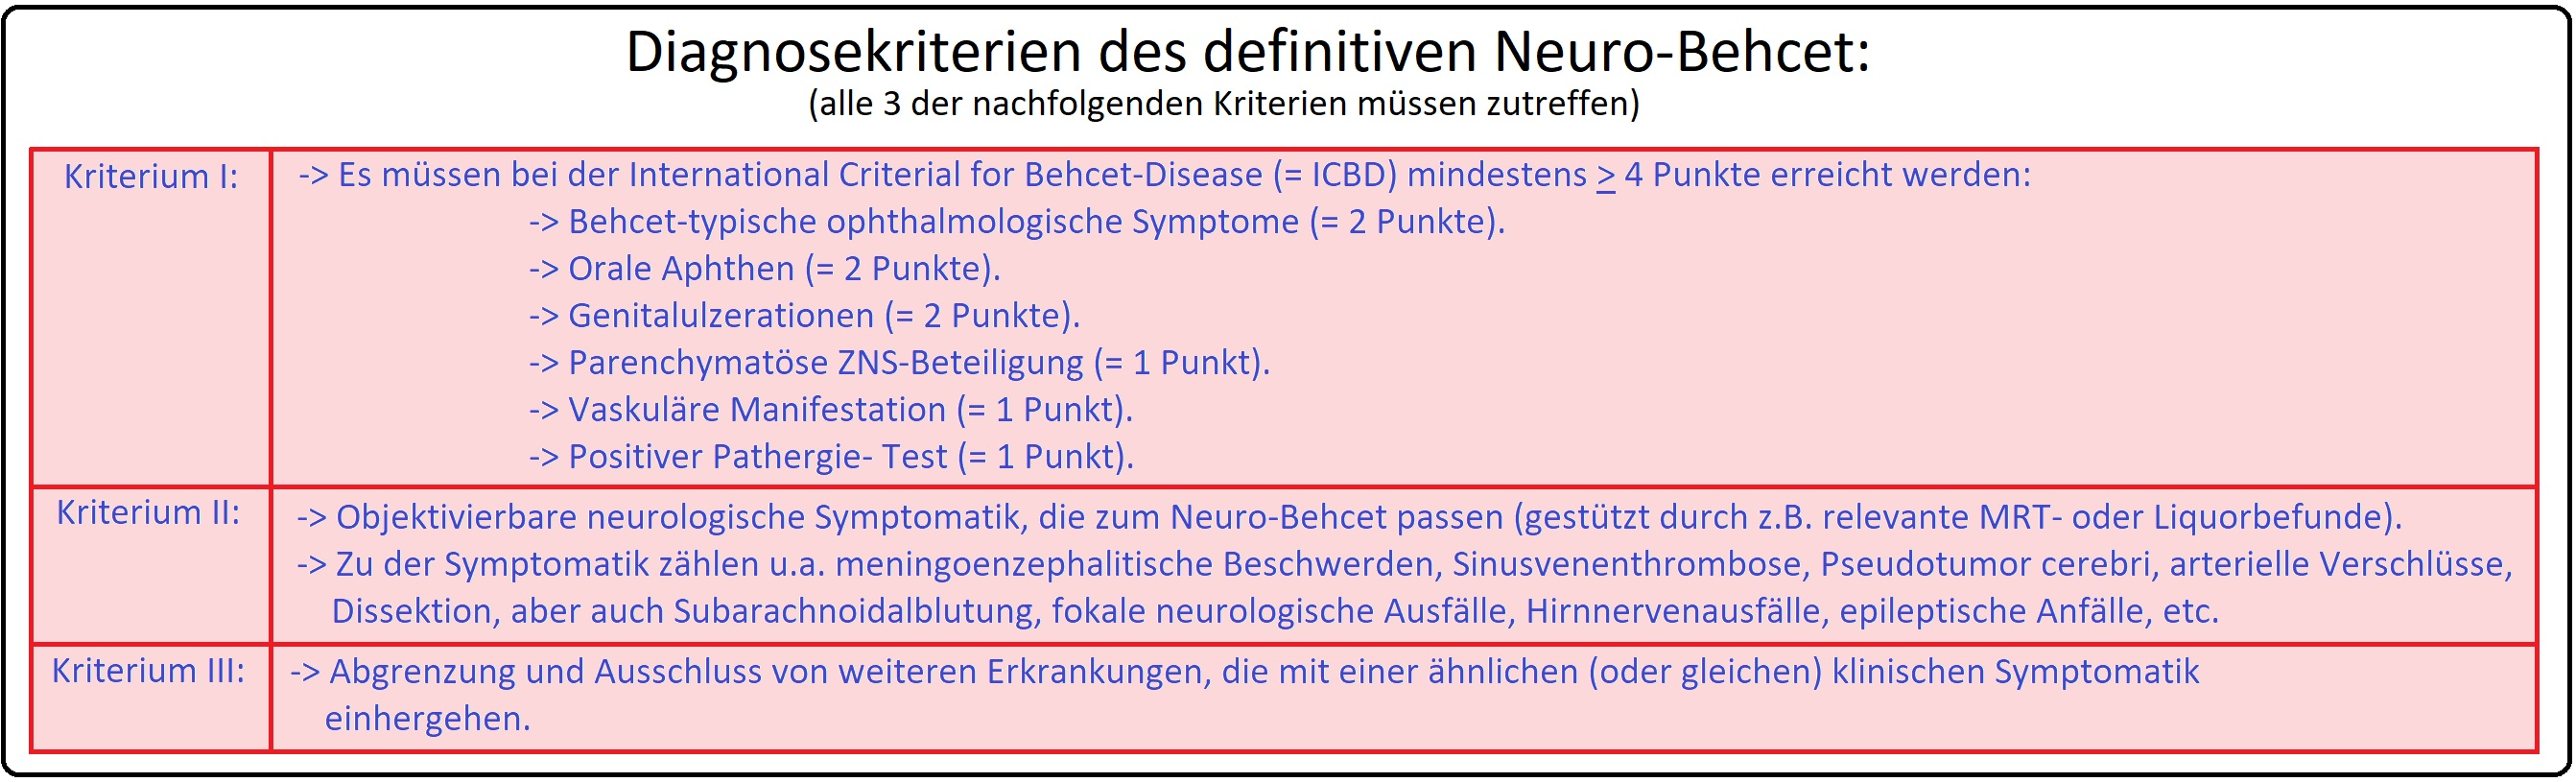 072 Diagnosekriterien des definitiven Neuro Behcet